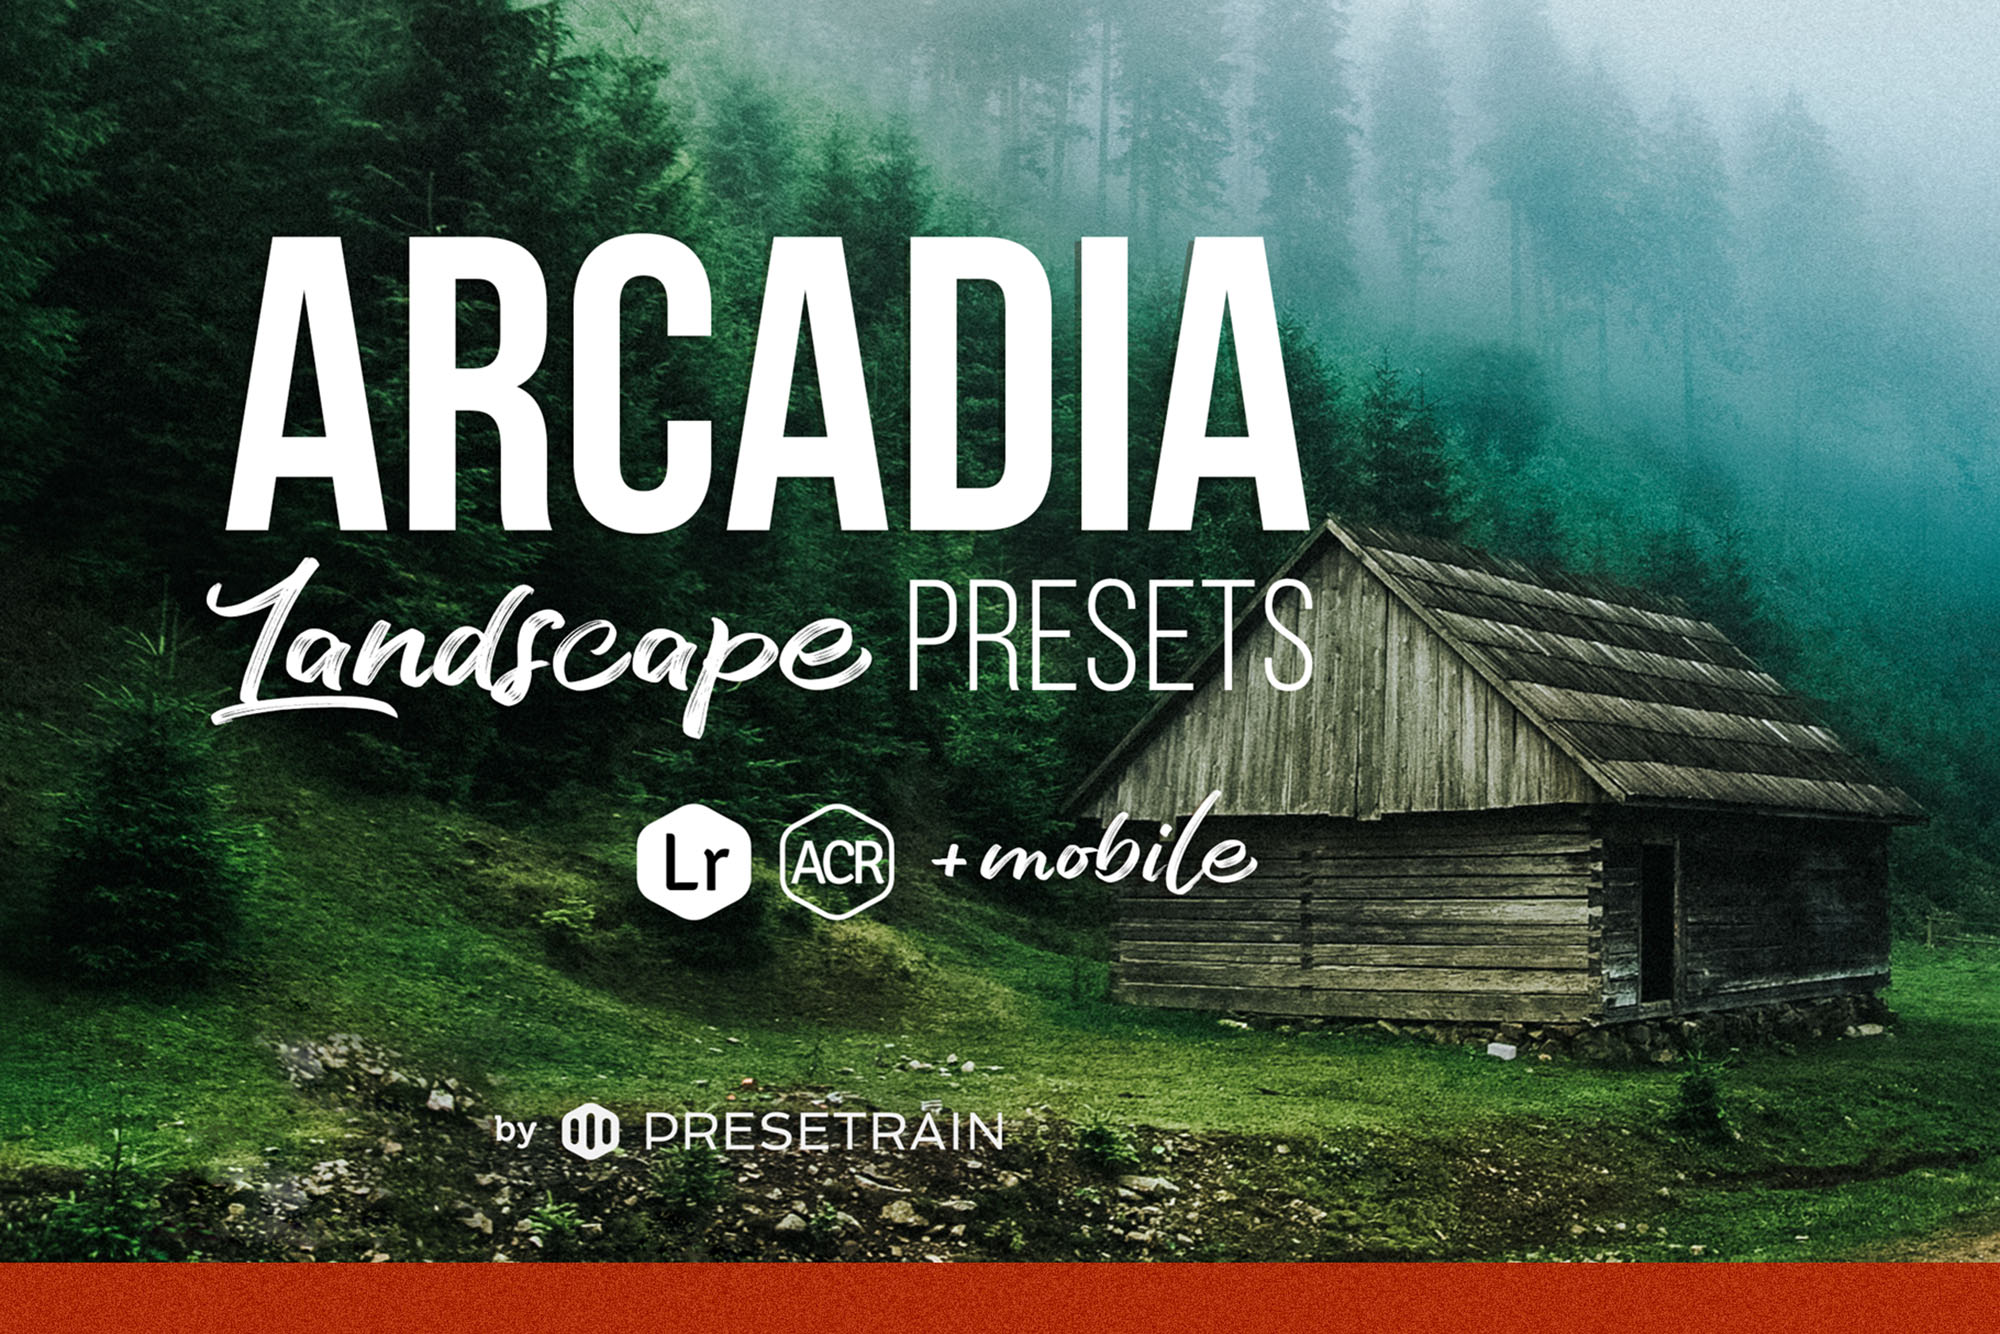 Arcadia Landscape Presets for Lightroom